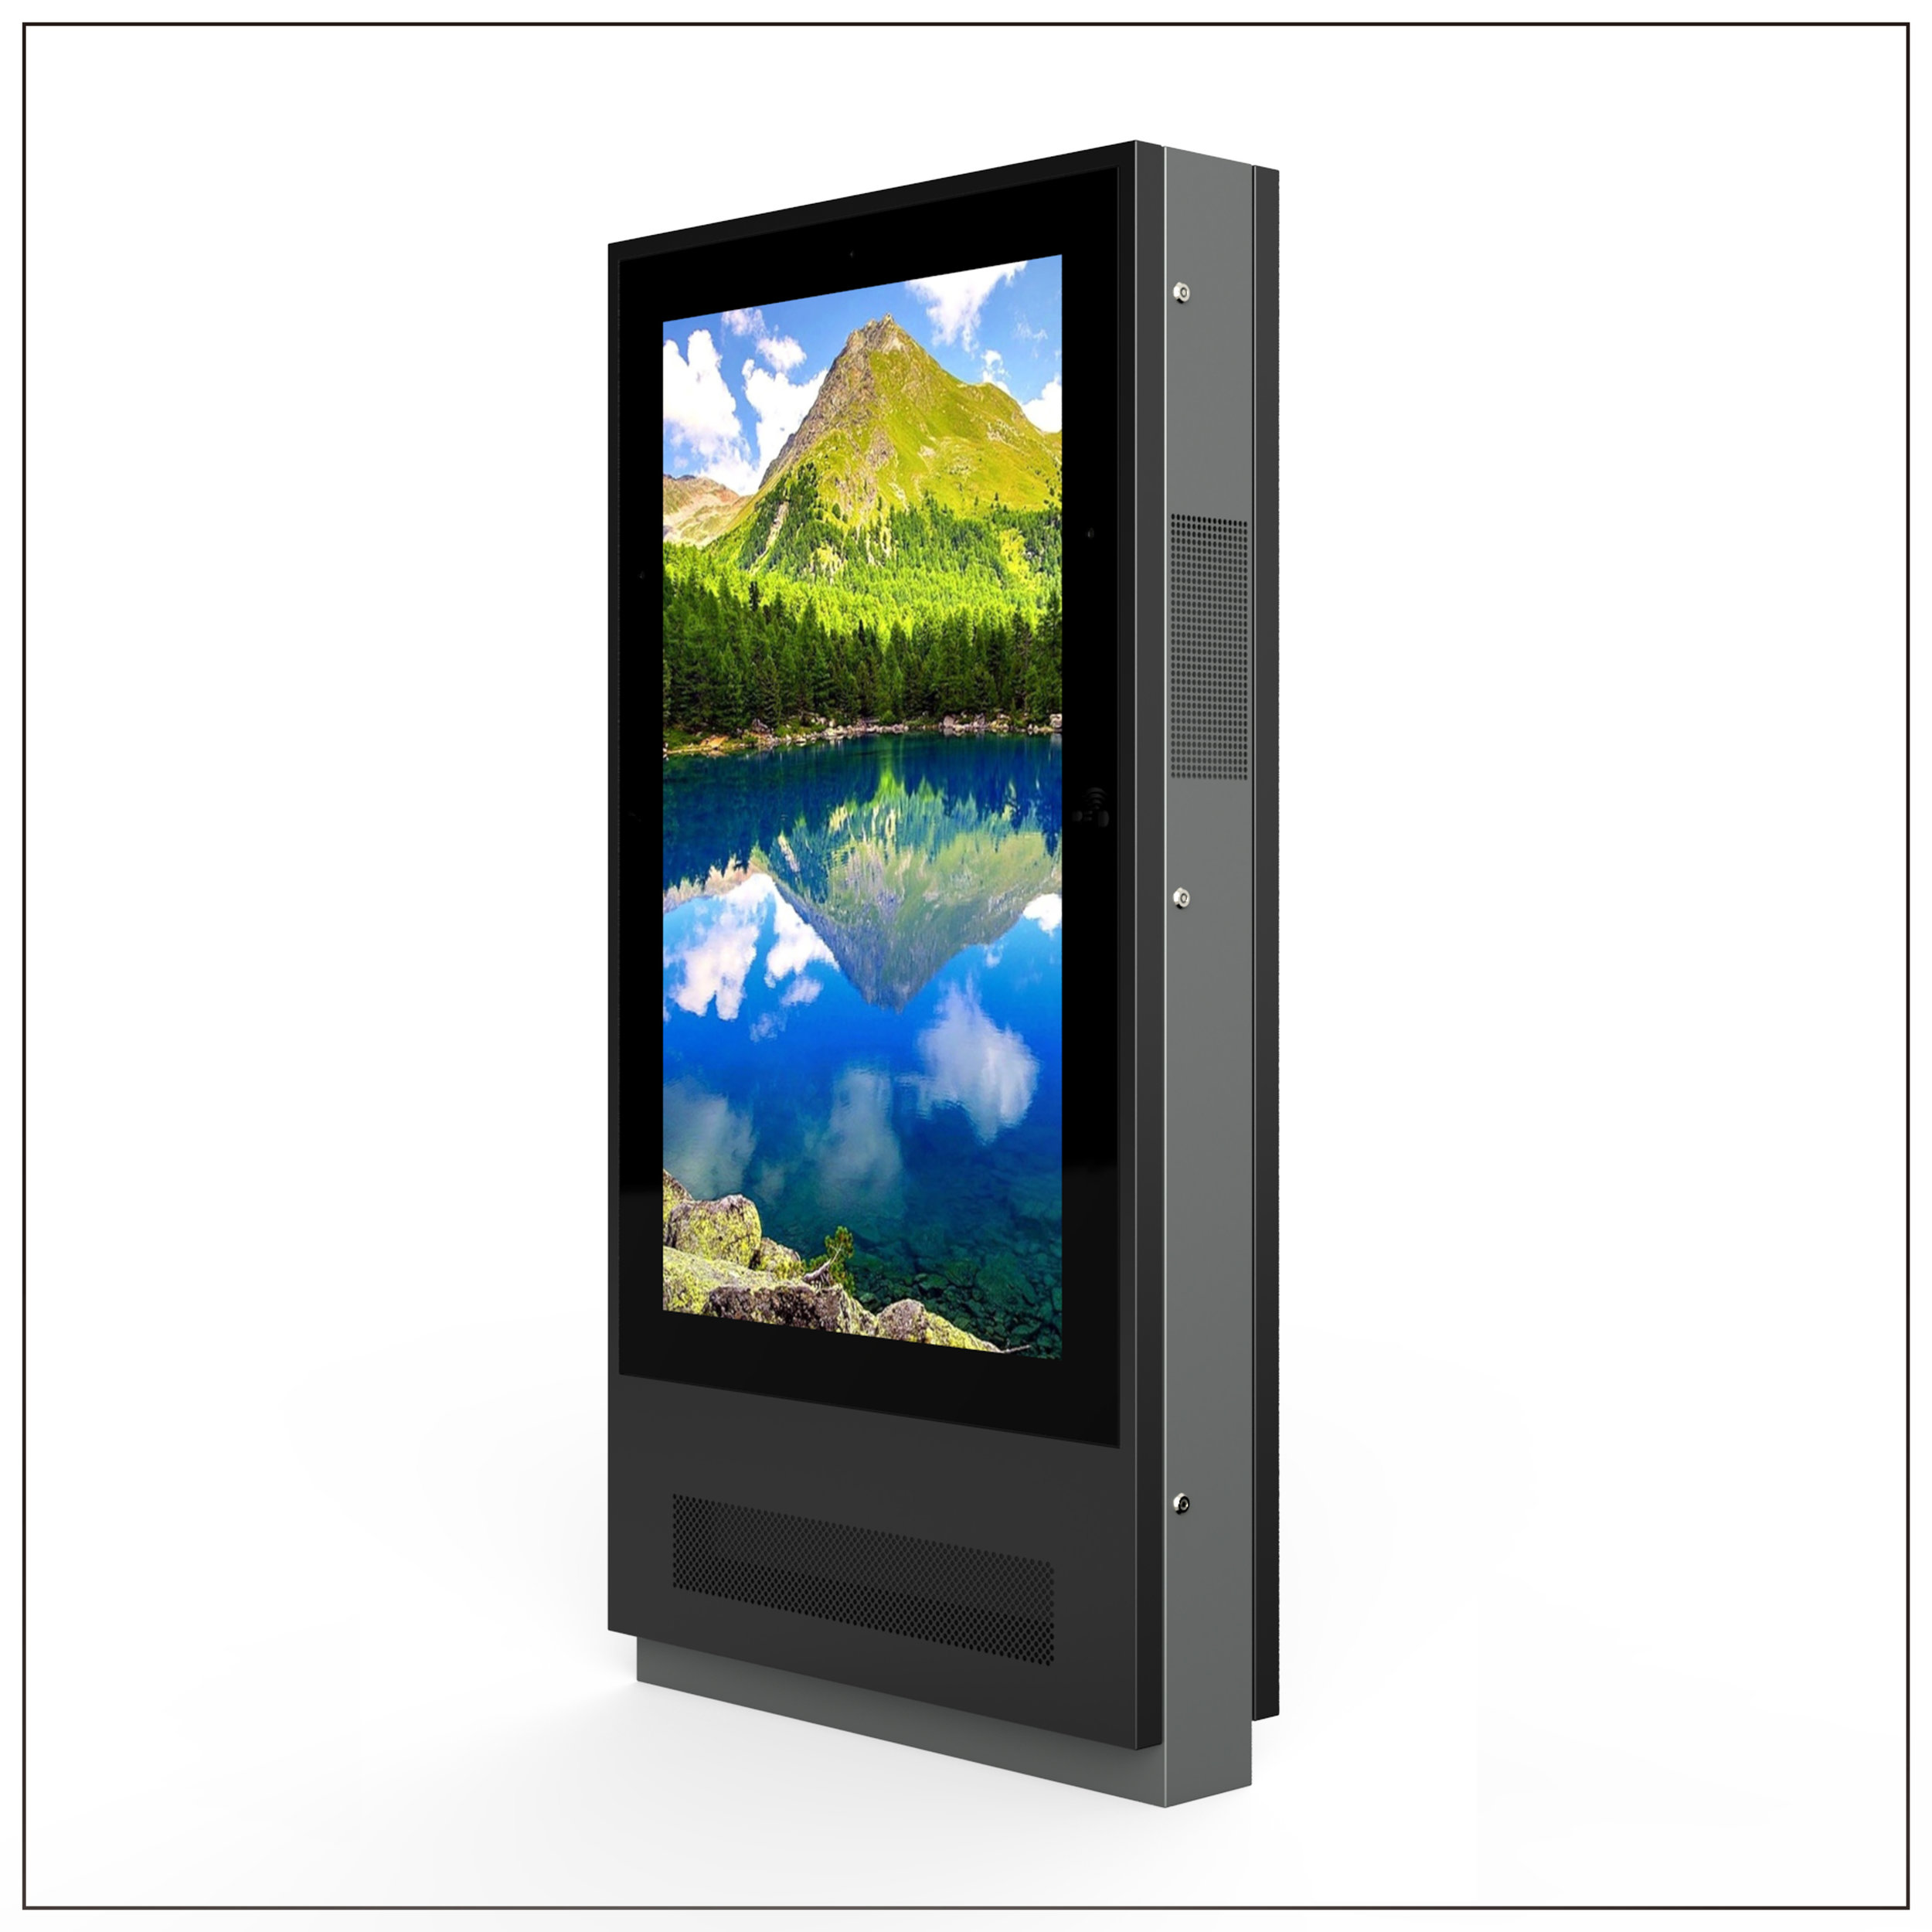 Outdoor High Brightness Dual Side LCD Displays - Panel Size: 65 inchBrightness : 3000 nitResolution: 1920 × 1080